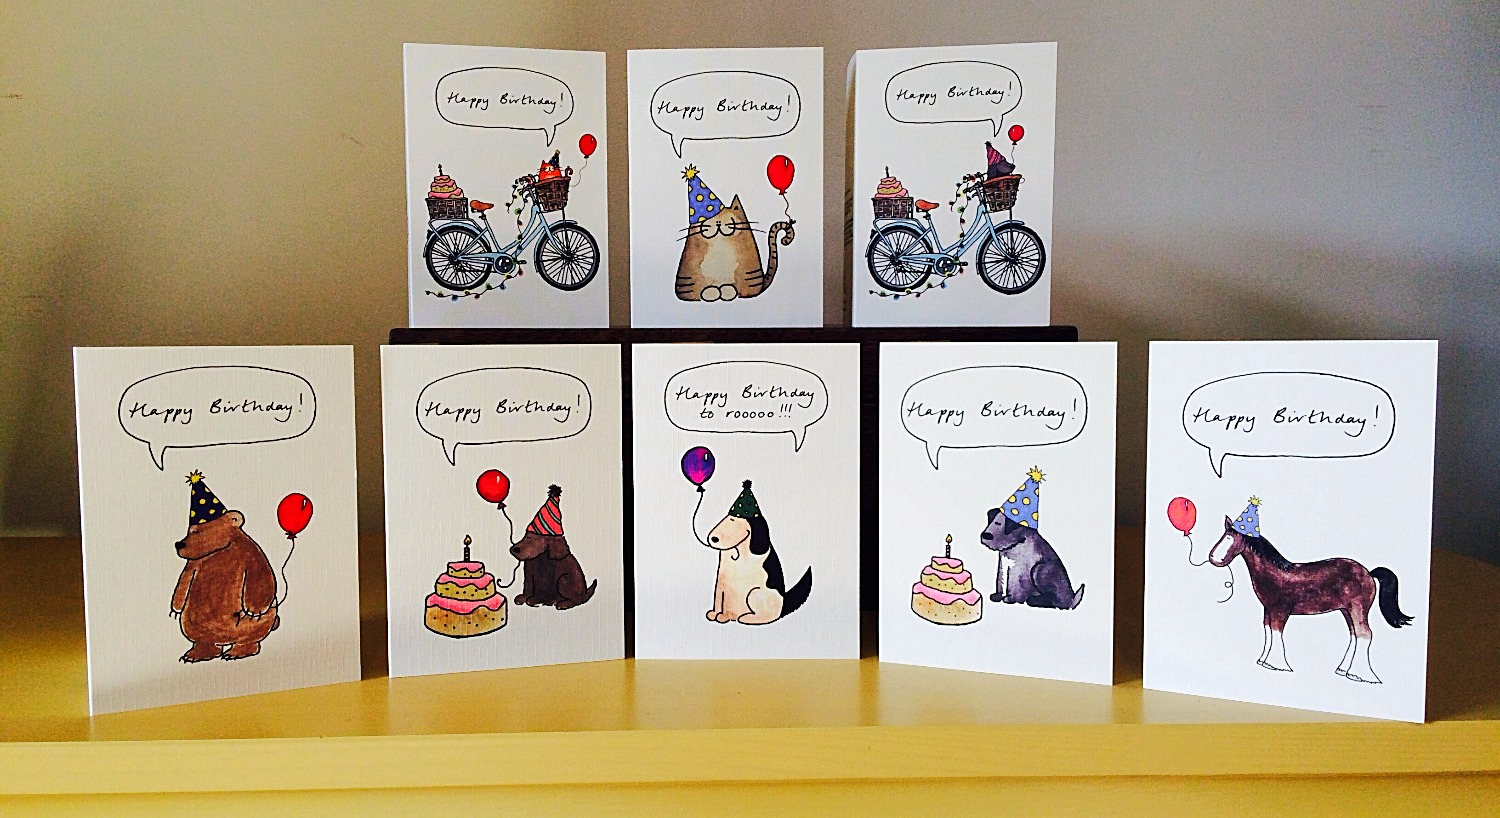 A selection of birthday card designs